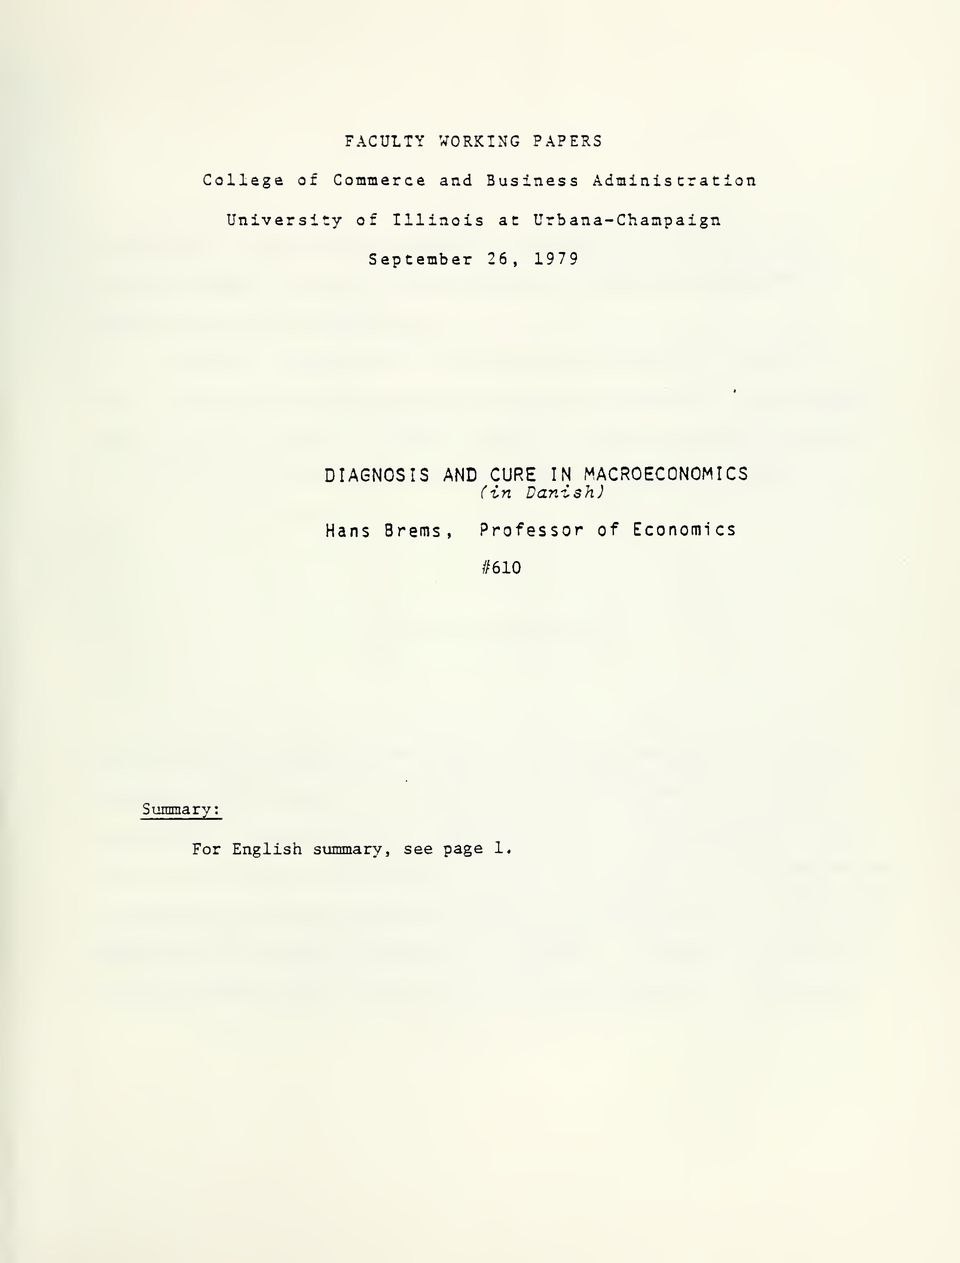 1979 DIAGNOSIS AND CURE IN MACROECONOMICS Cin Danish) Hans Brems,